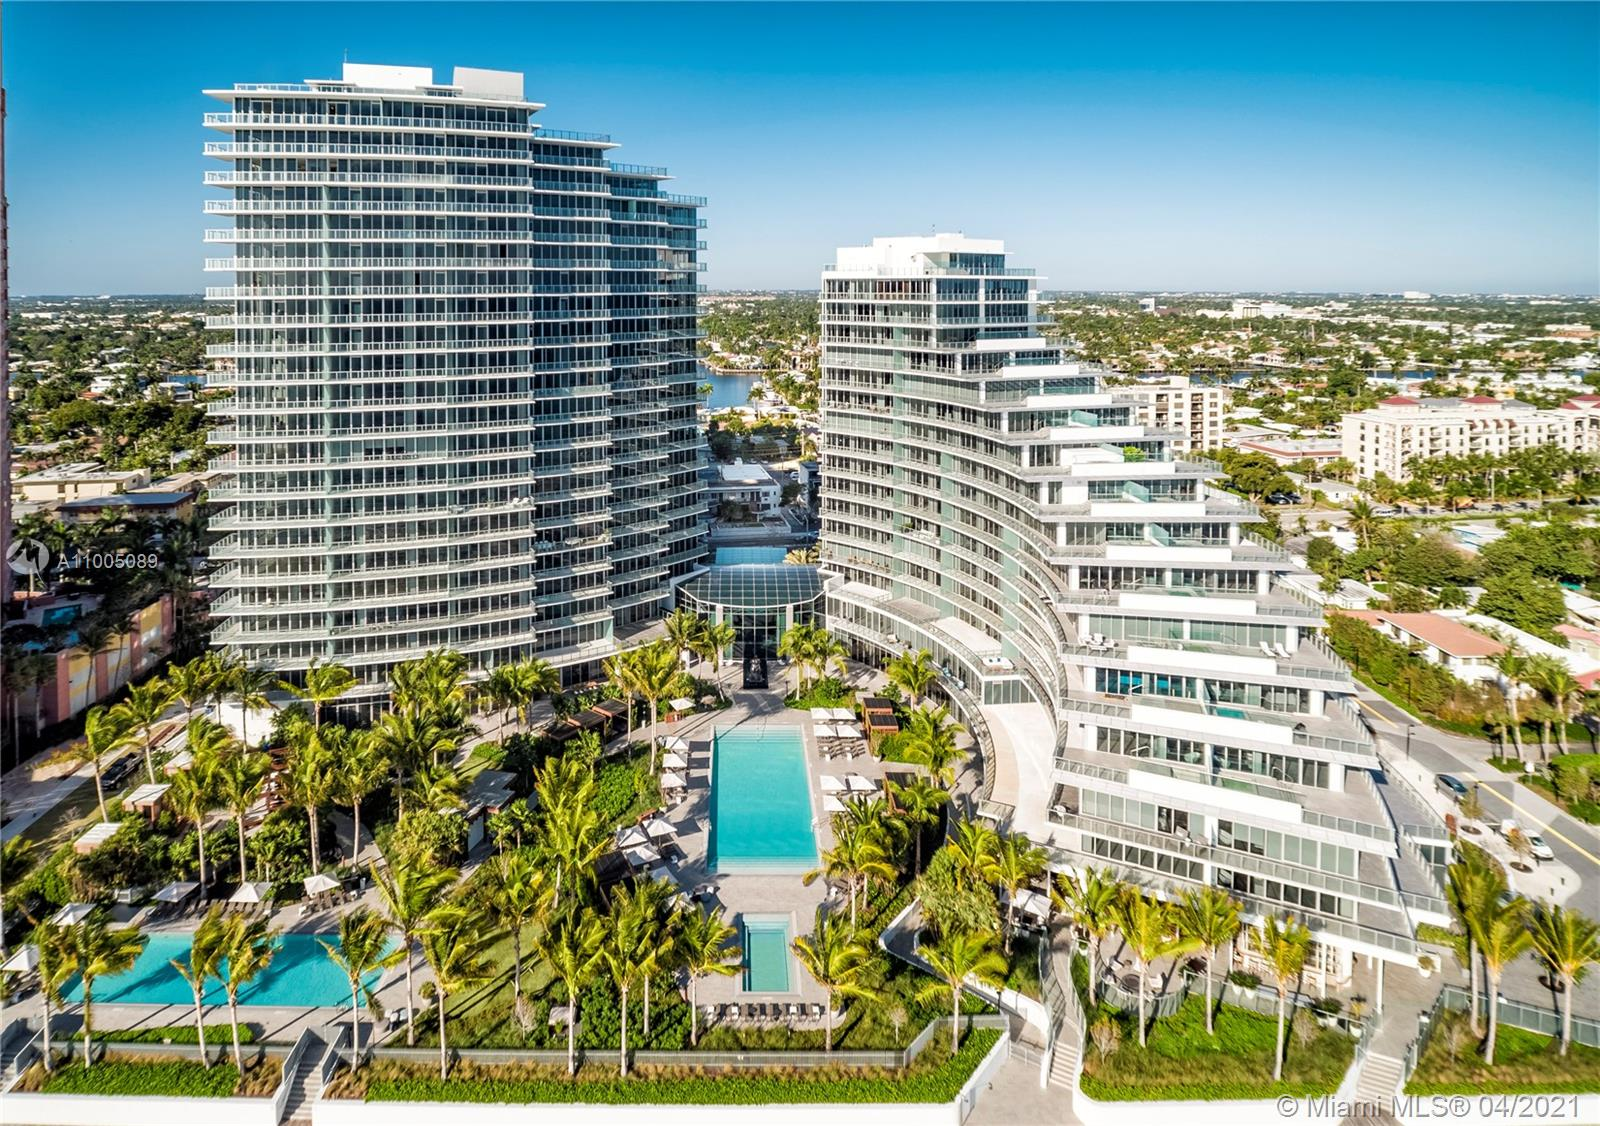 N202 RESIDENCE WELCOMES THE SUNSHINE IN WITH VERY INTIMATE OCEAN AND POOL VIEWS FROM THE 2ND FLOOR. THIS UNIQUE TROPICAL OCEANFRONT 1 PLUS DEN 2 BATHS IS THE LARGEST 1 BEDROOM PLAN AT AUBERGE BEACH GENEROUSLY OFFERING 1575 SQFT WITH A SUNNY OPEN TERRACE OF 268 SQFT. THE UNIT FEATURES CHEFS OPEN KITCHEN WITH EXPRESSO CABINETRY/QUARTZ COUNTERTOPS, WINE STORAGE, GAS STOVE, WOLF EXPRESSO/CAPPUCCINO INTEGRATED SYSTEM. AUBERGE BEACH WORLD CLASS AMENITIES INCLUDE FITNESS CENTER, GOLF SIMULATOR ROOM, NAPA WINE ROOM, SCREENING ROOM, DUNE RESTAURANT, FULL SERVICE SPA AND MUCH MORE.